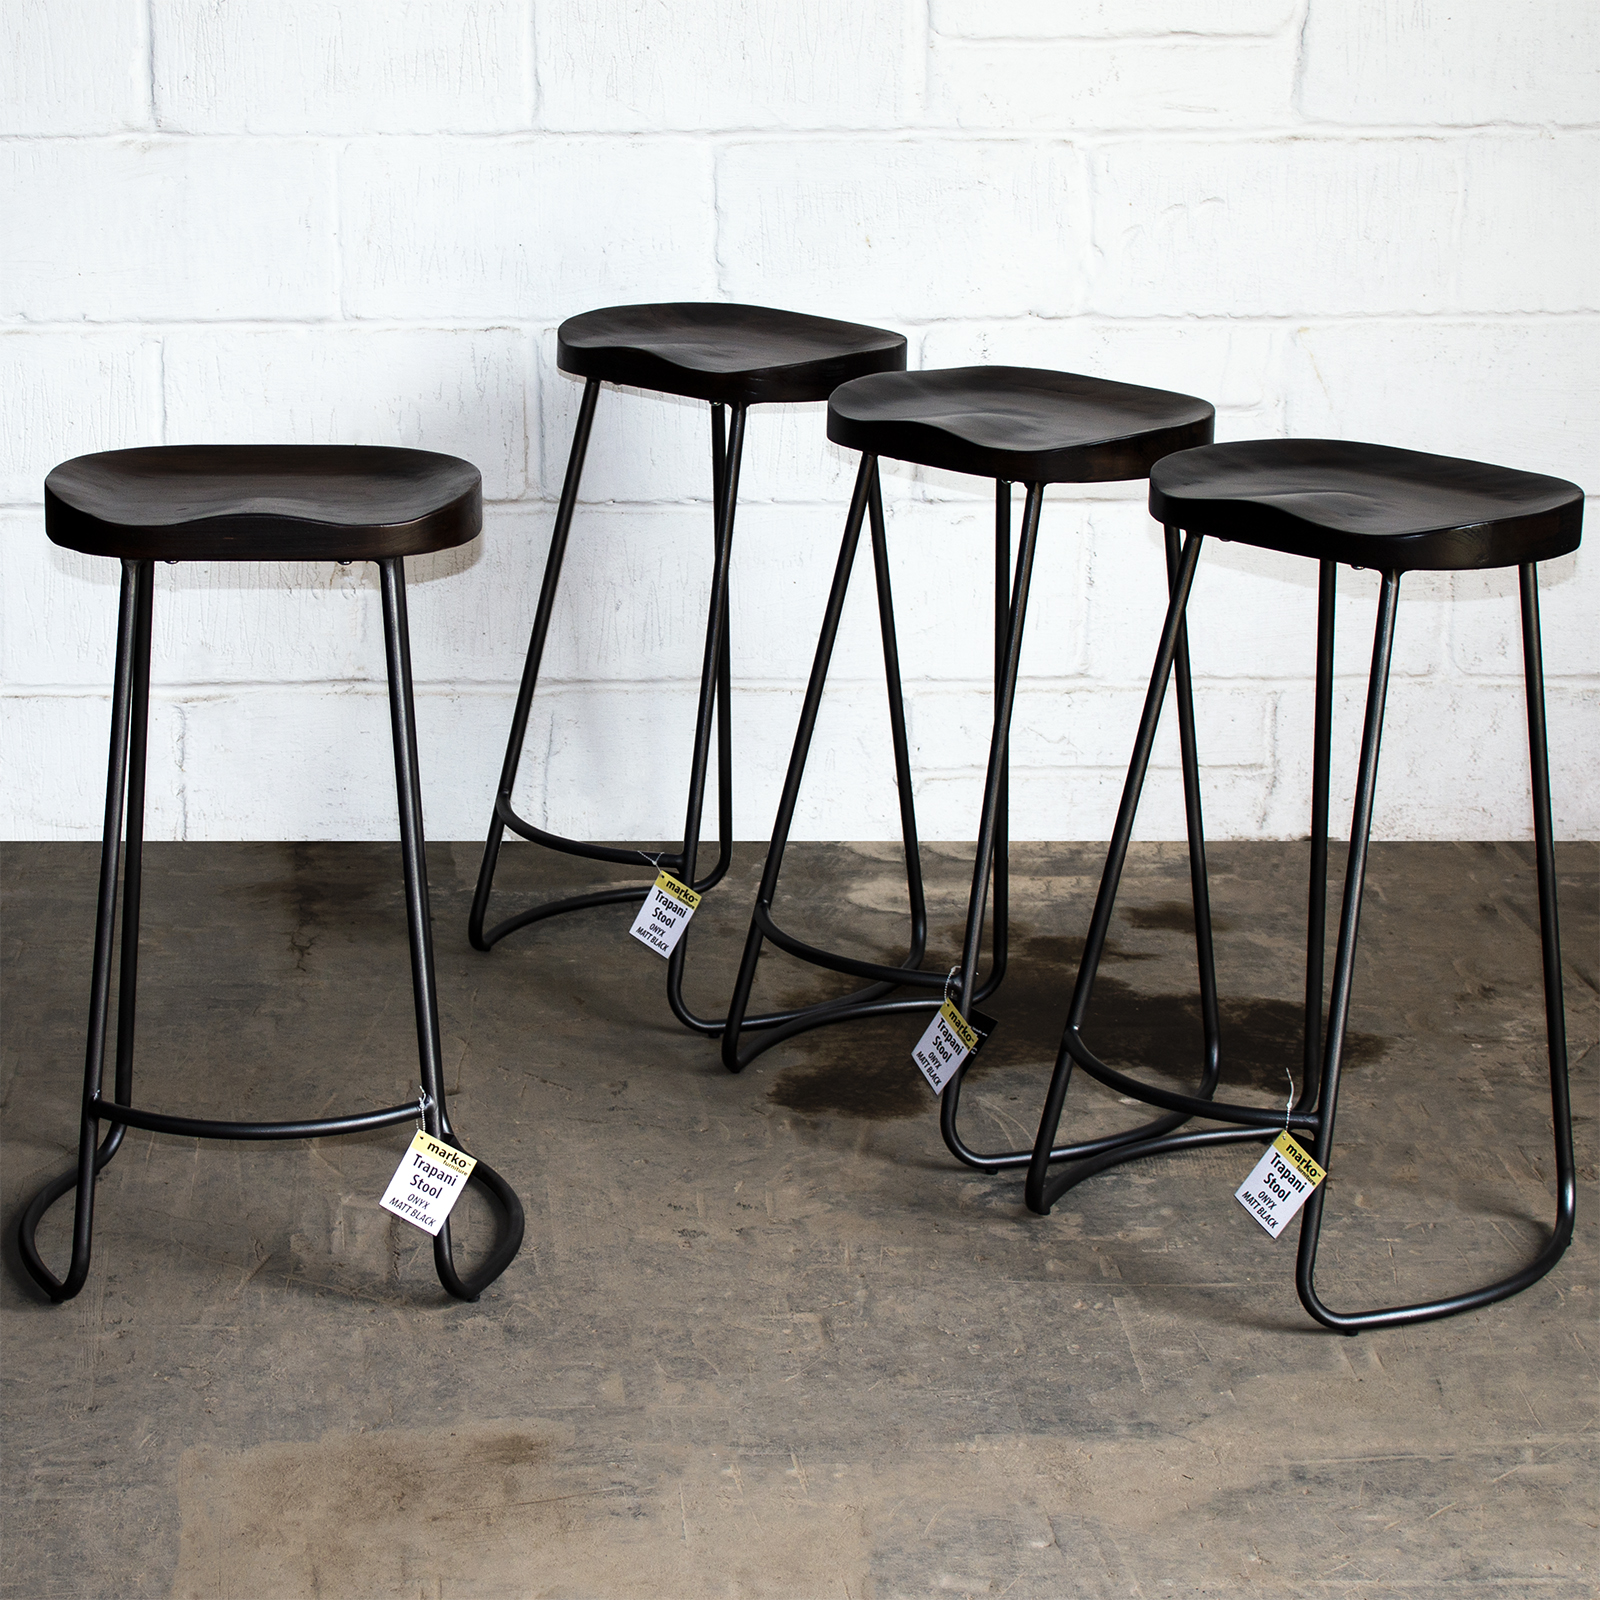 Amazing Details About Onyx Matt Black Industrial Vintage Rustic Bar Stool Dark Wooden Tractor Seat Gmtry Best Dining Table And Chair Ideas Images Gmtryco